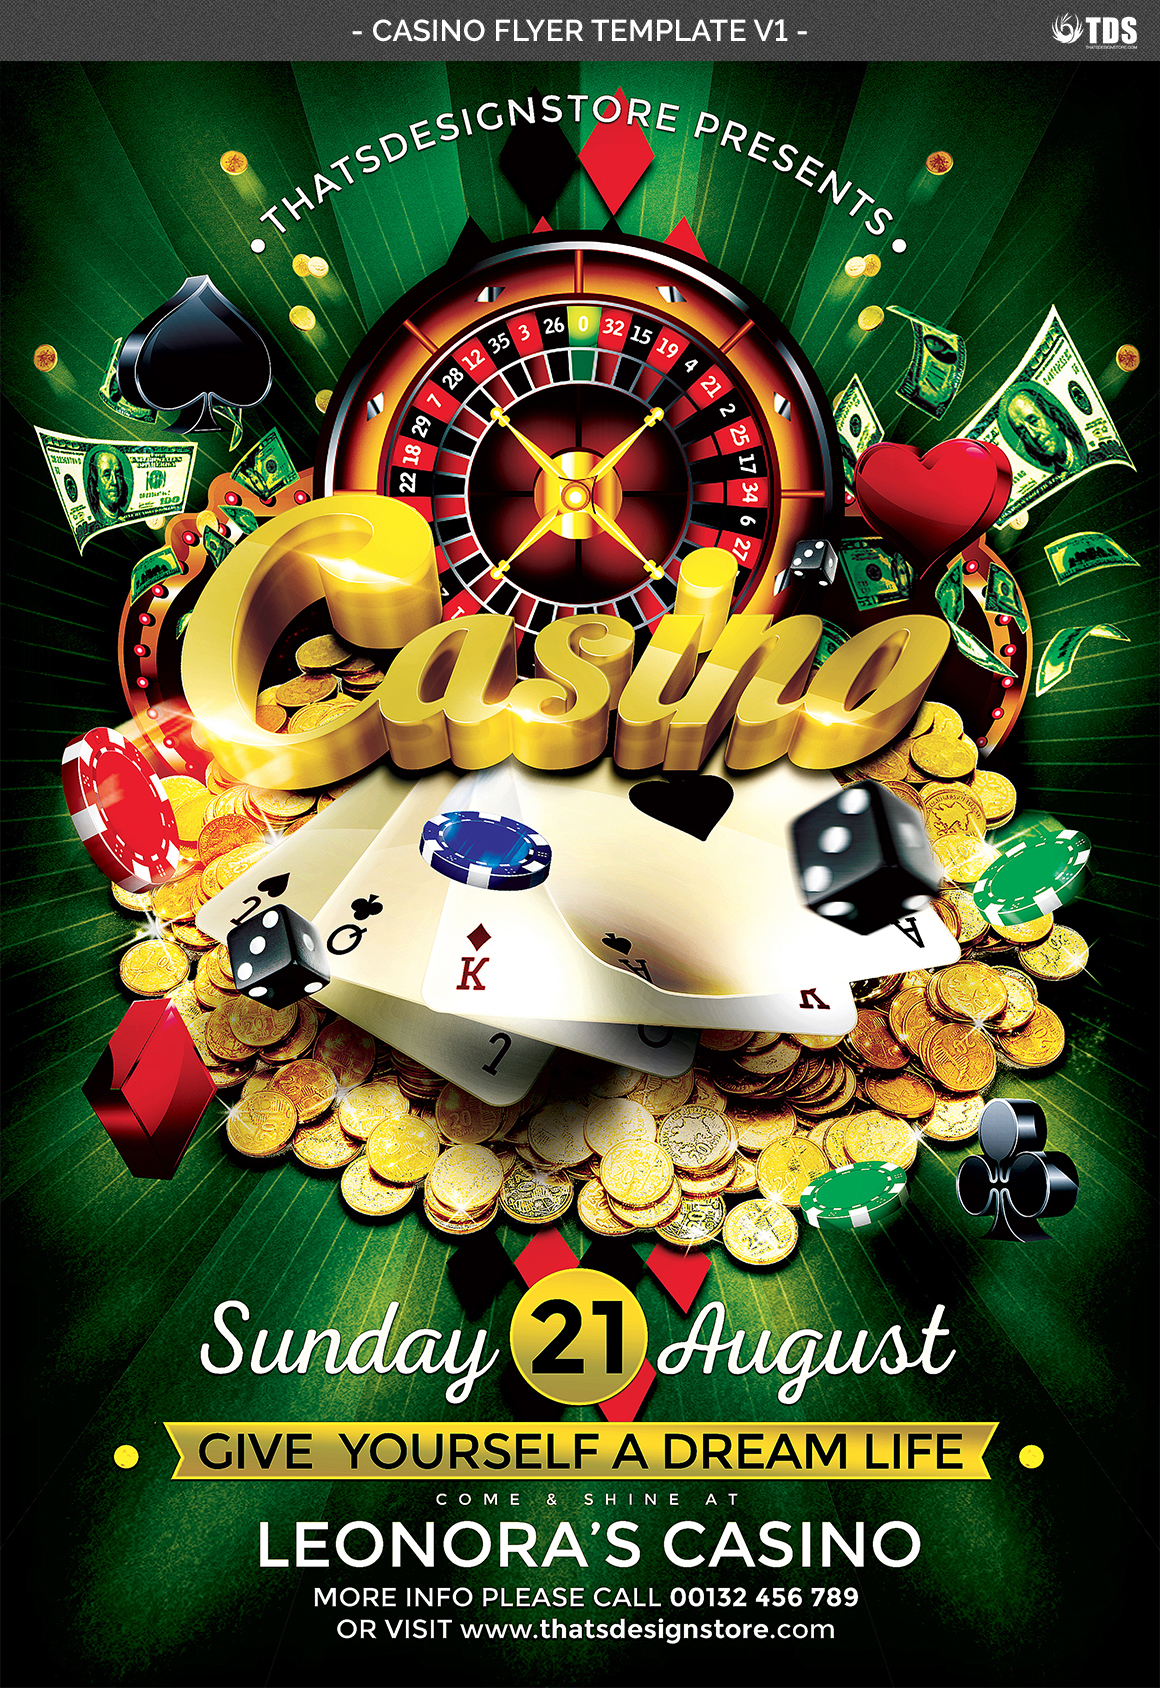 Casino Flyer Template V1 example image 4